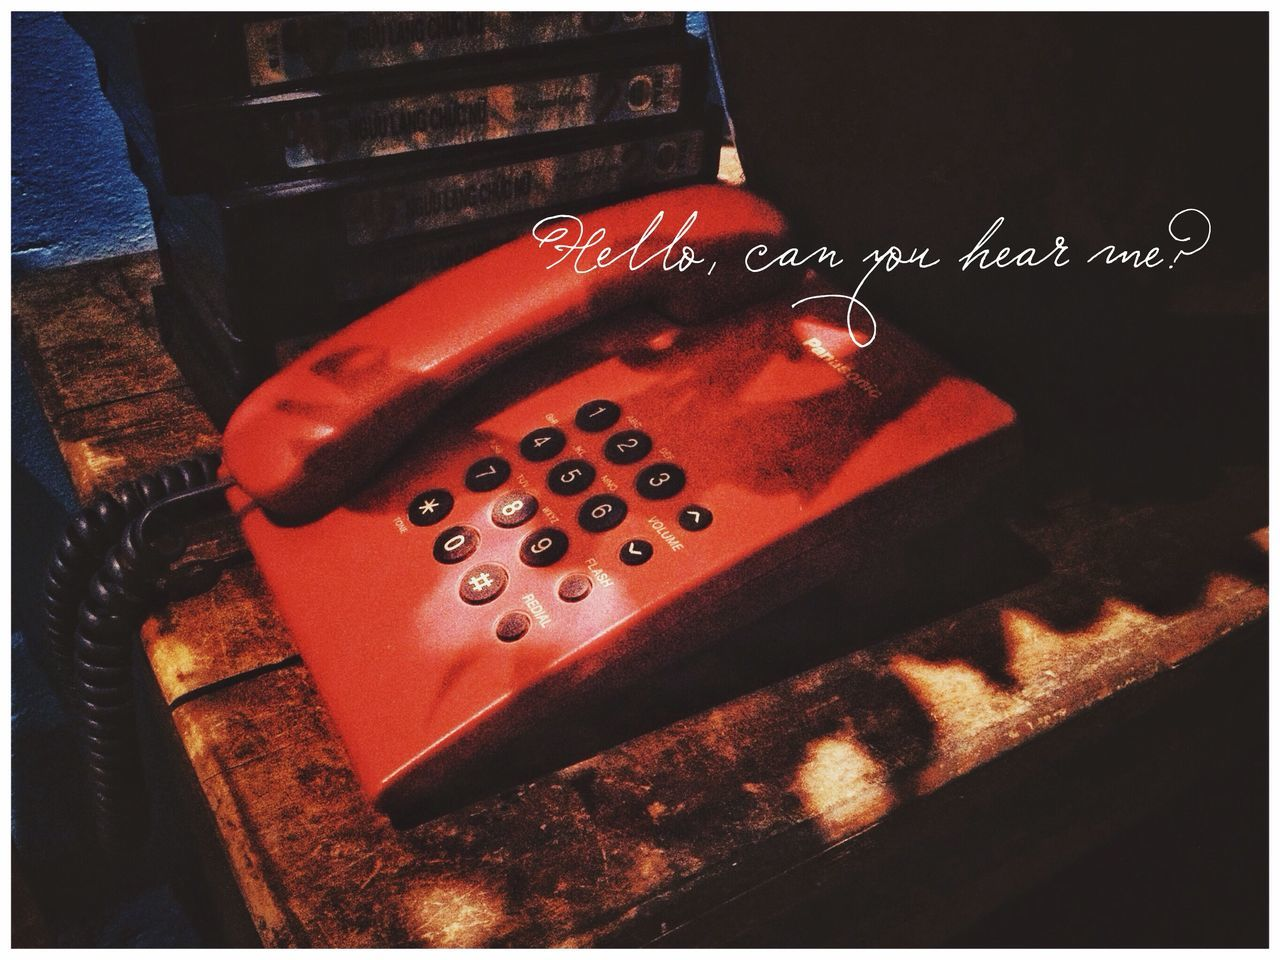 transfer print, auto post production filter, close-up, indoors, connection, technology, no people, communication, high angle view, number, table, metal, red, still life, single object, day, old, wireless technology, focus on foreground